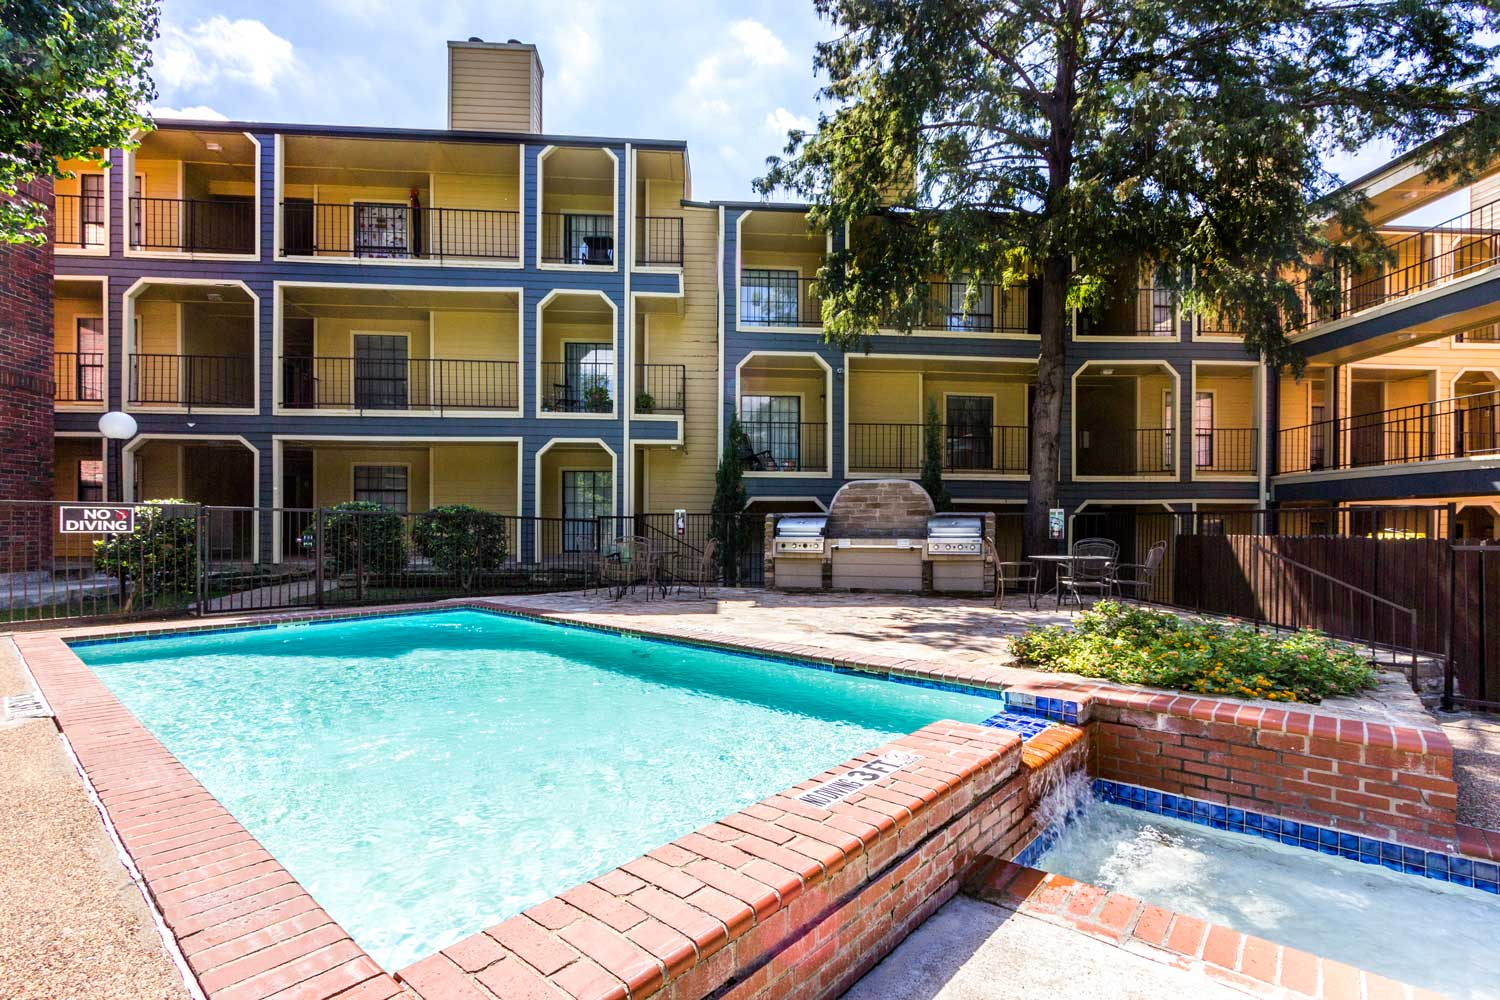 Wading Pool with Water Fountain Feature at Forest Hills Apartments in Dallas, TX